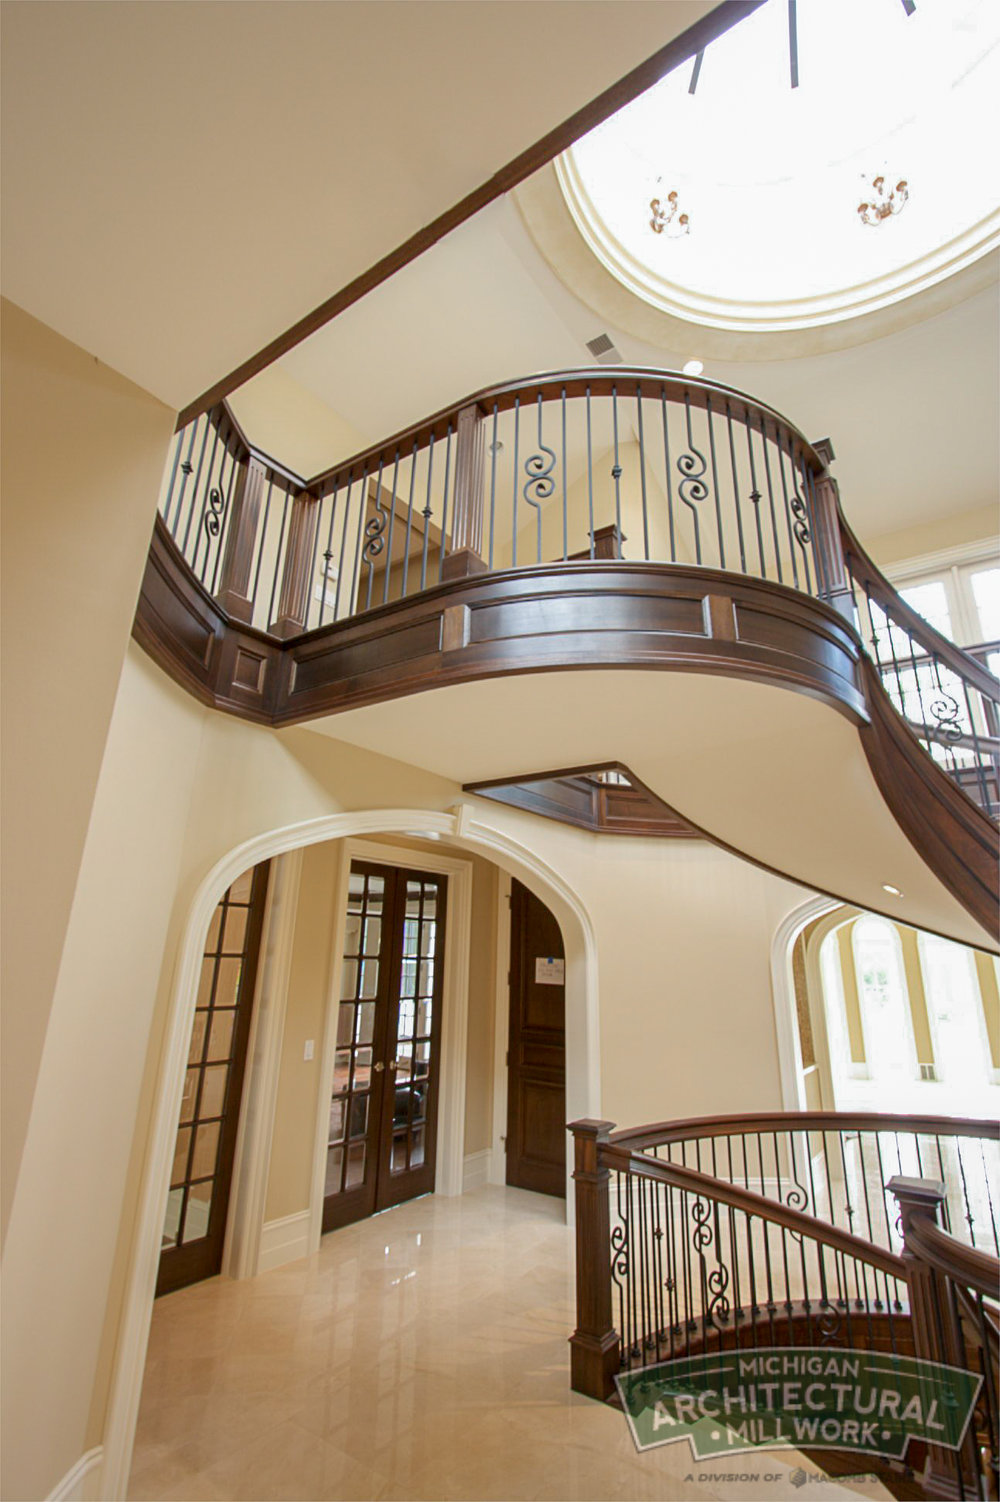 Michigan Architectural Millwork- Moulding and Millwork Photo-97.jpg